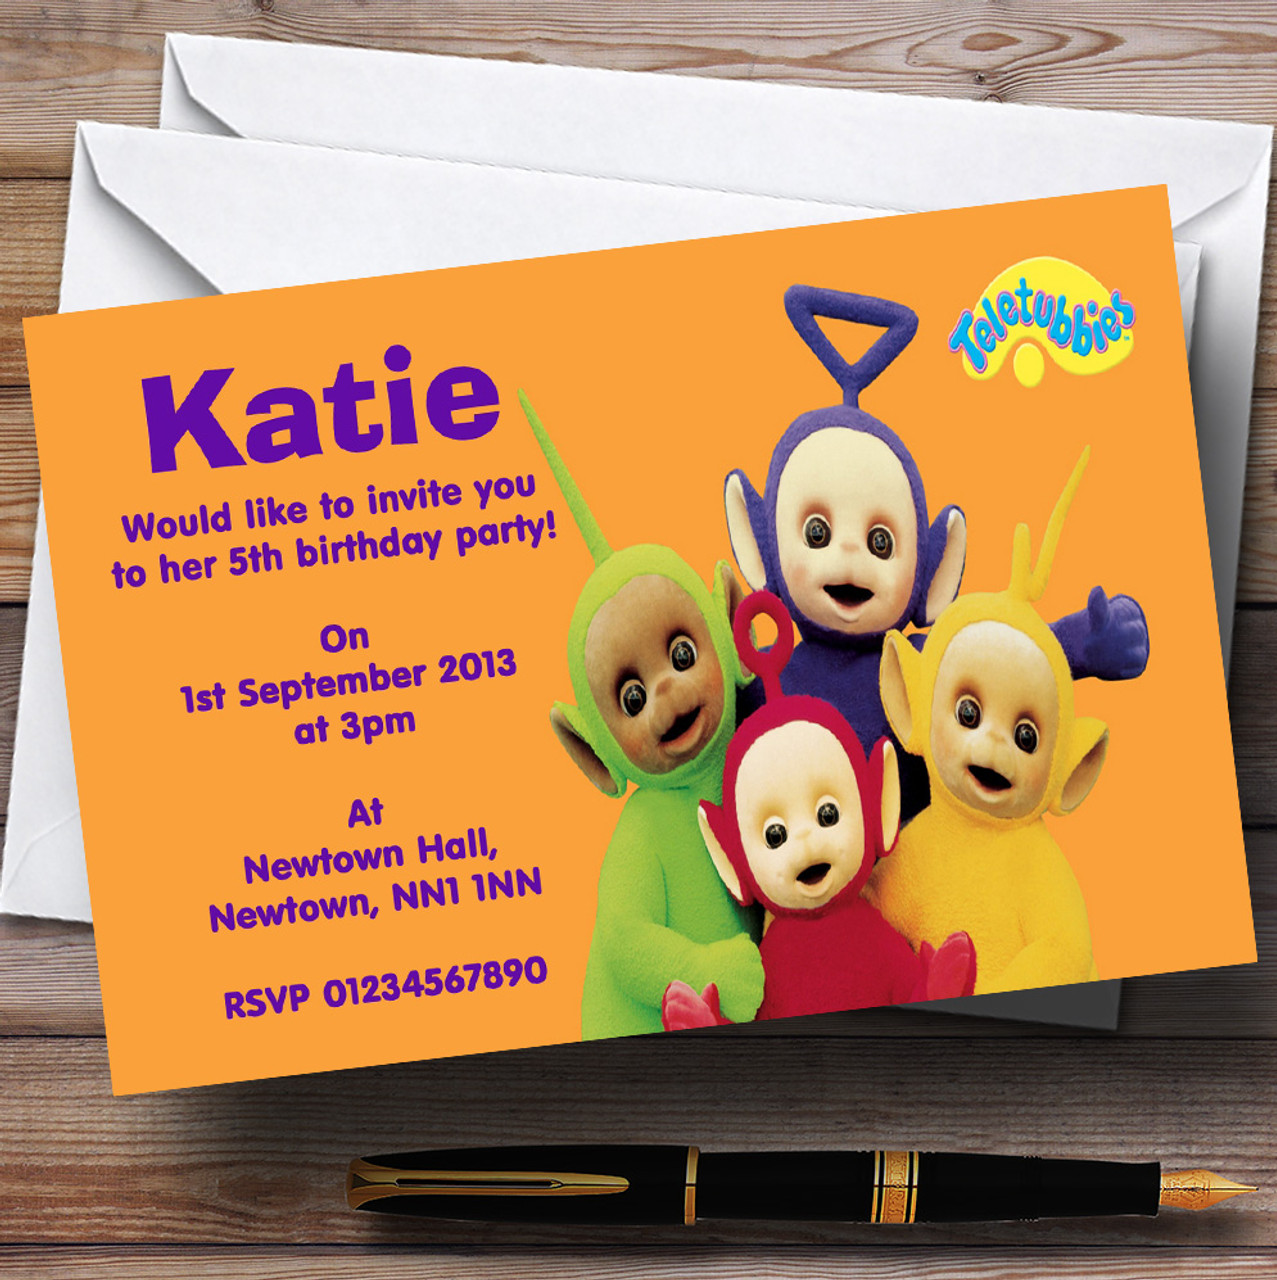 teletubbies personalised children s birthday party invitations the